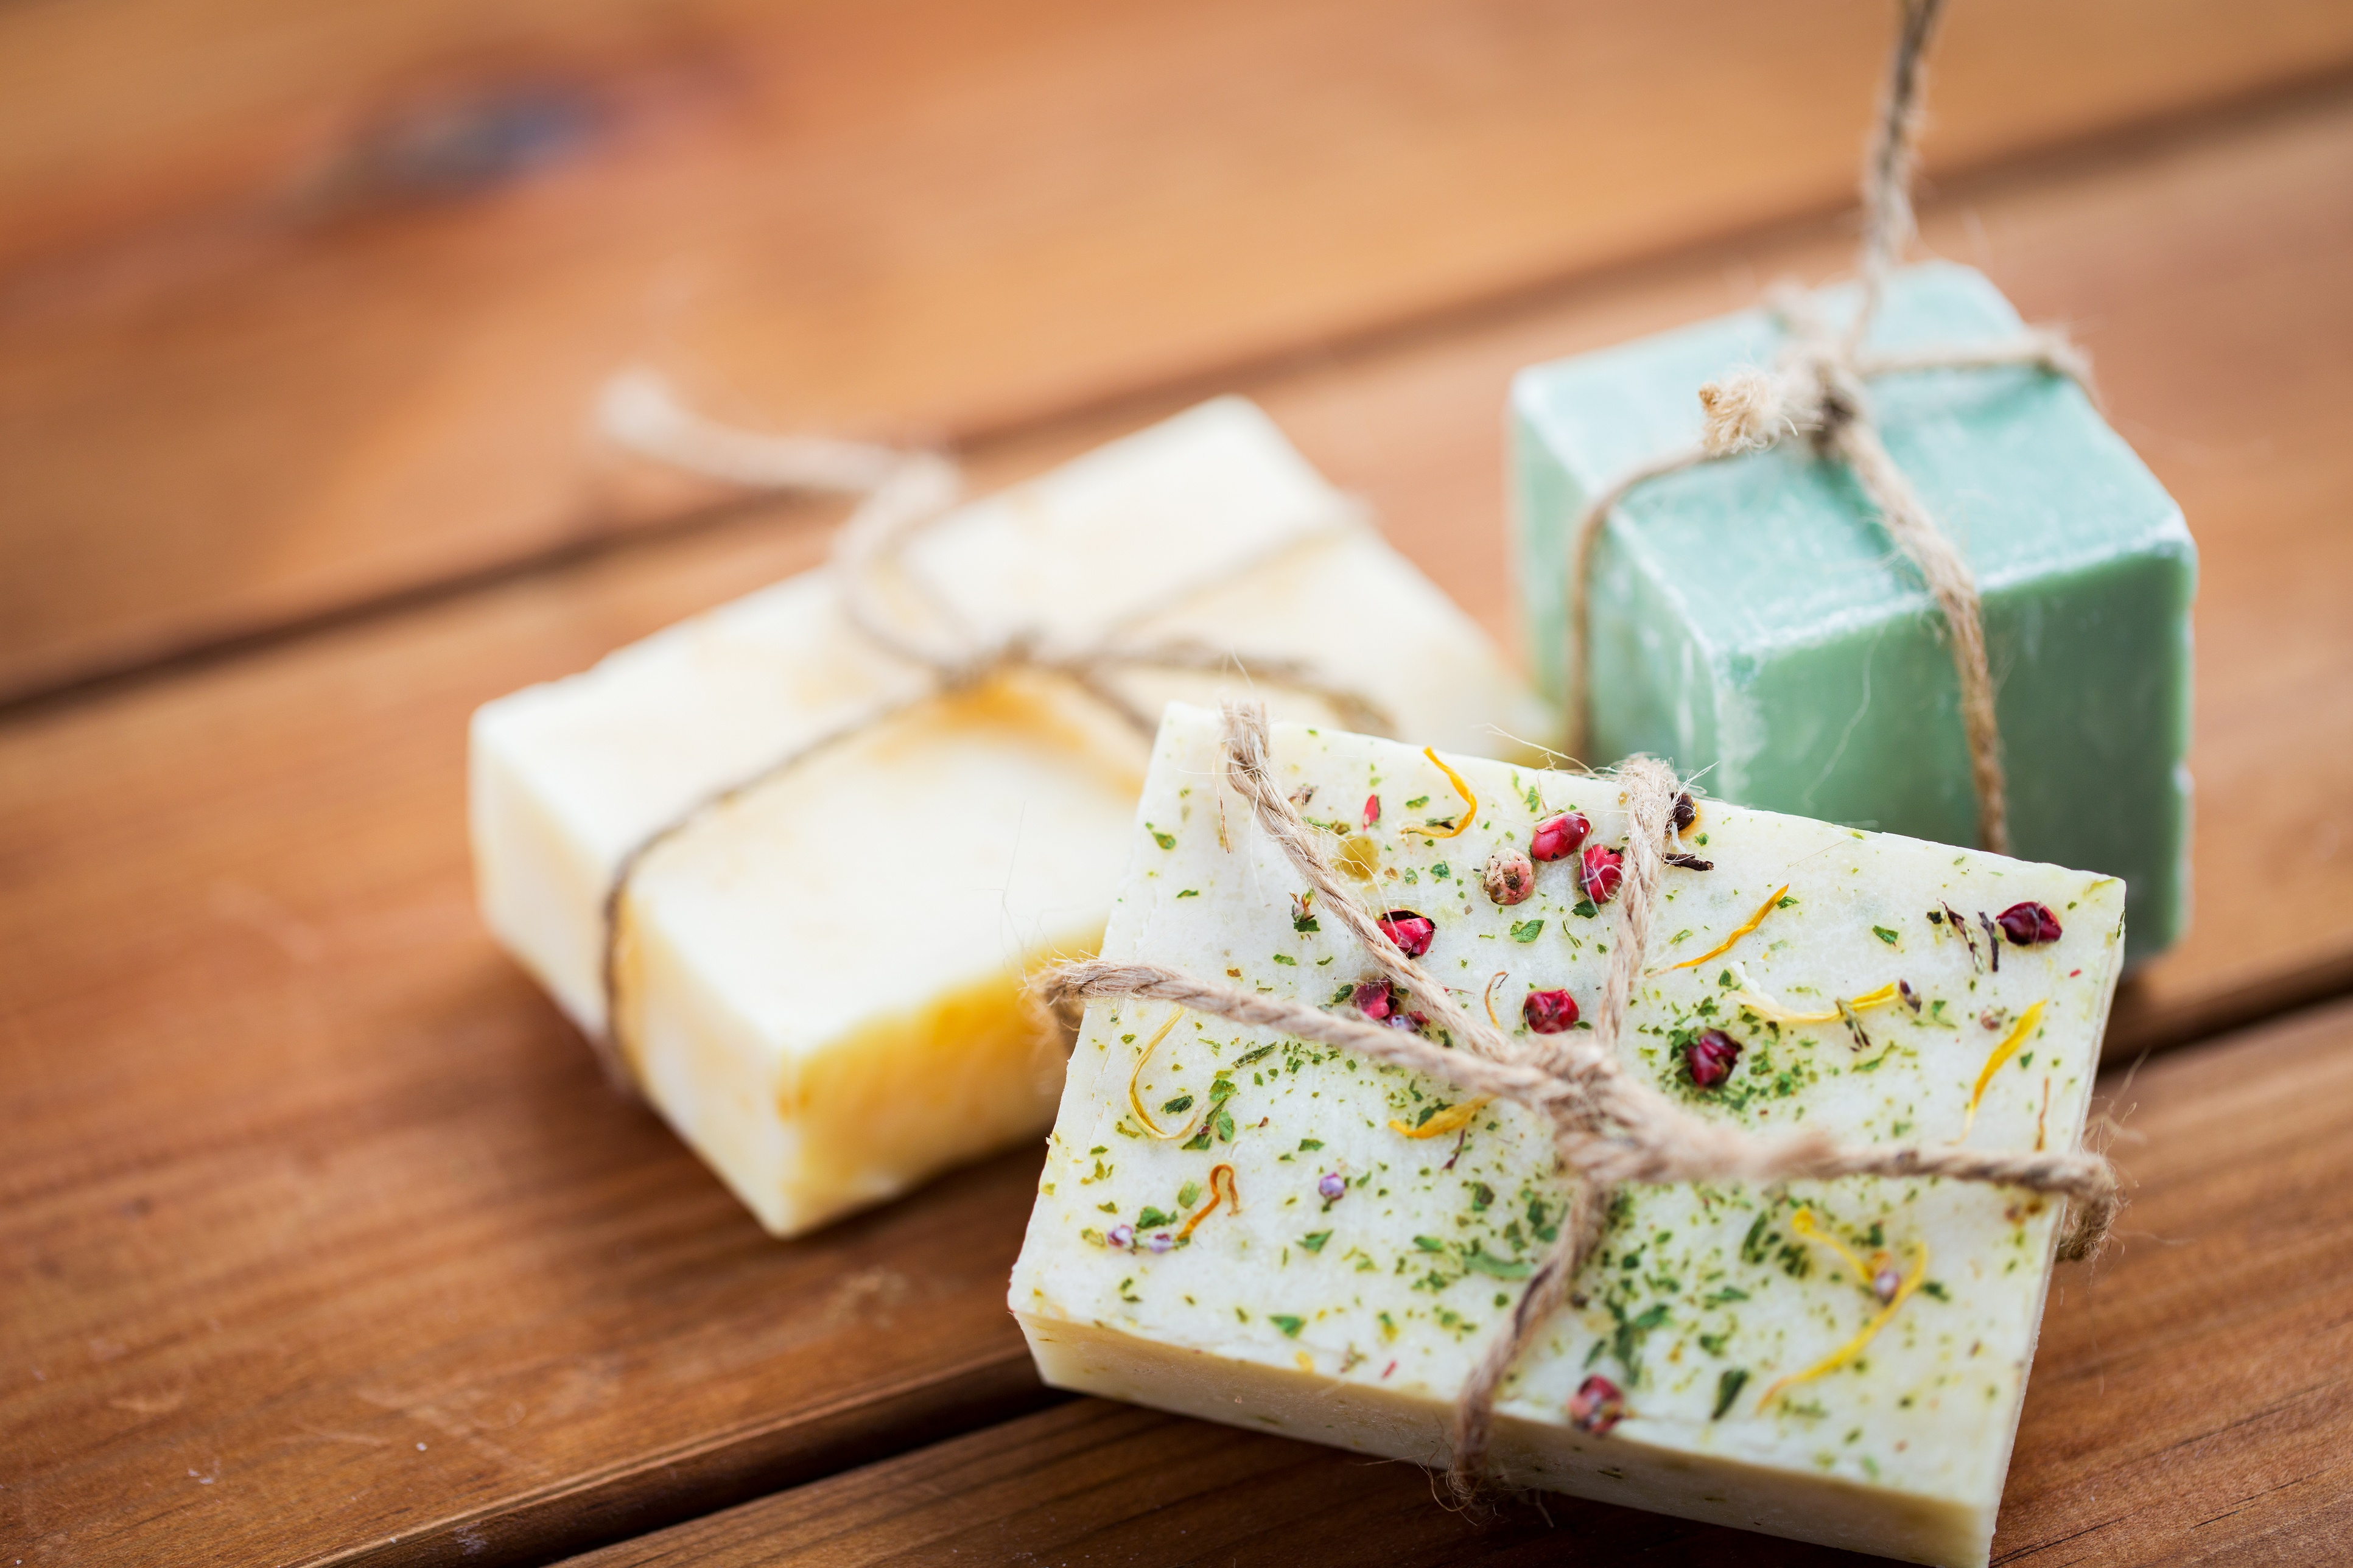 handcrafted soap.jpg